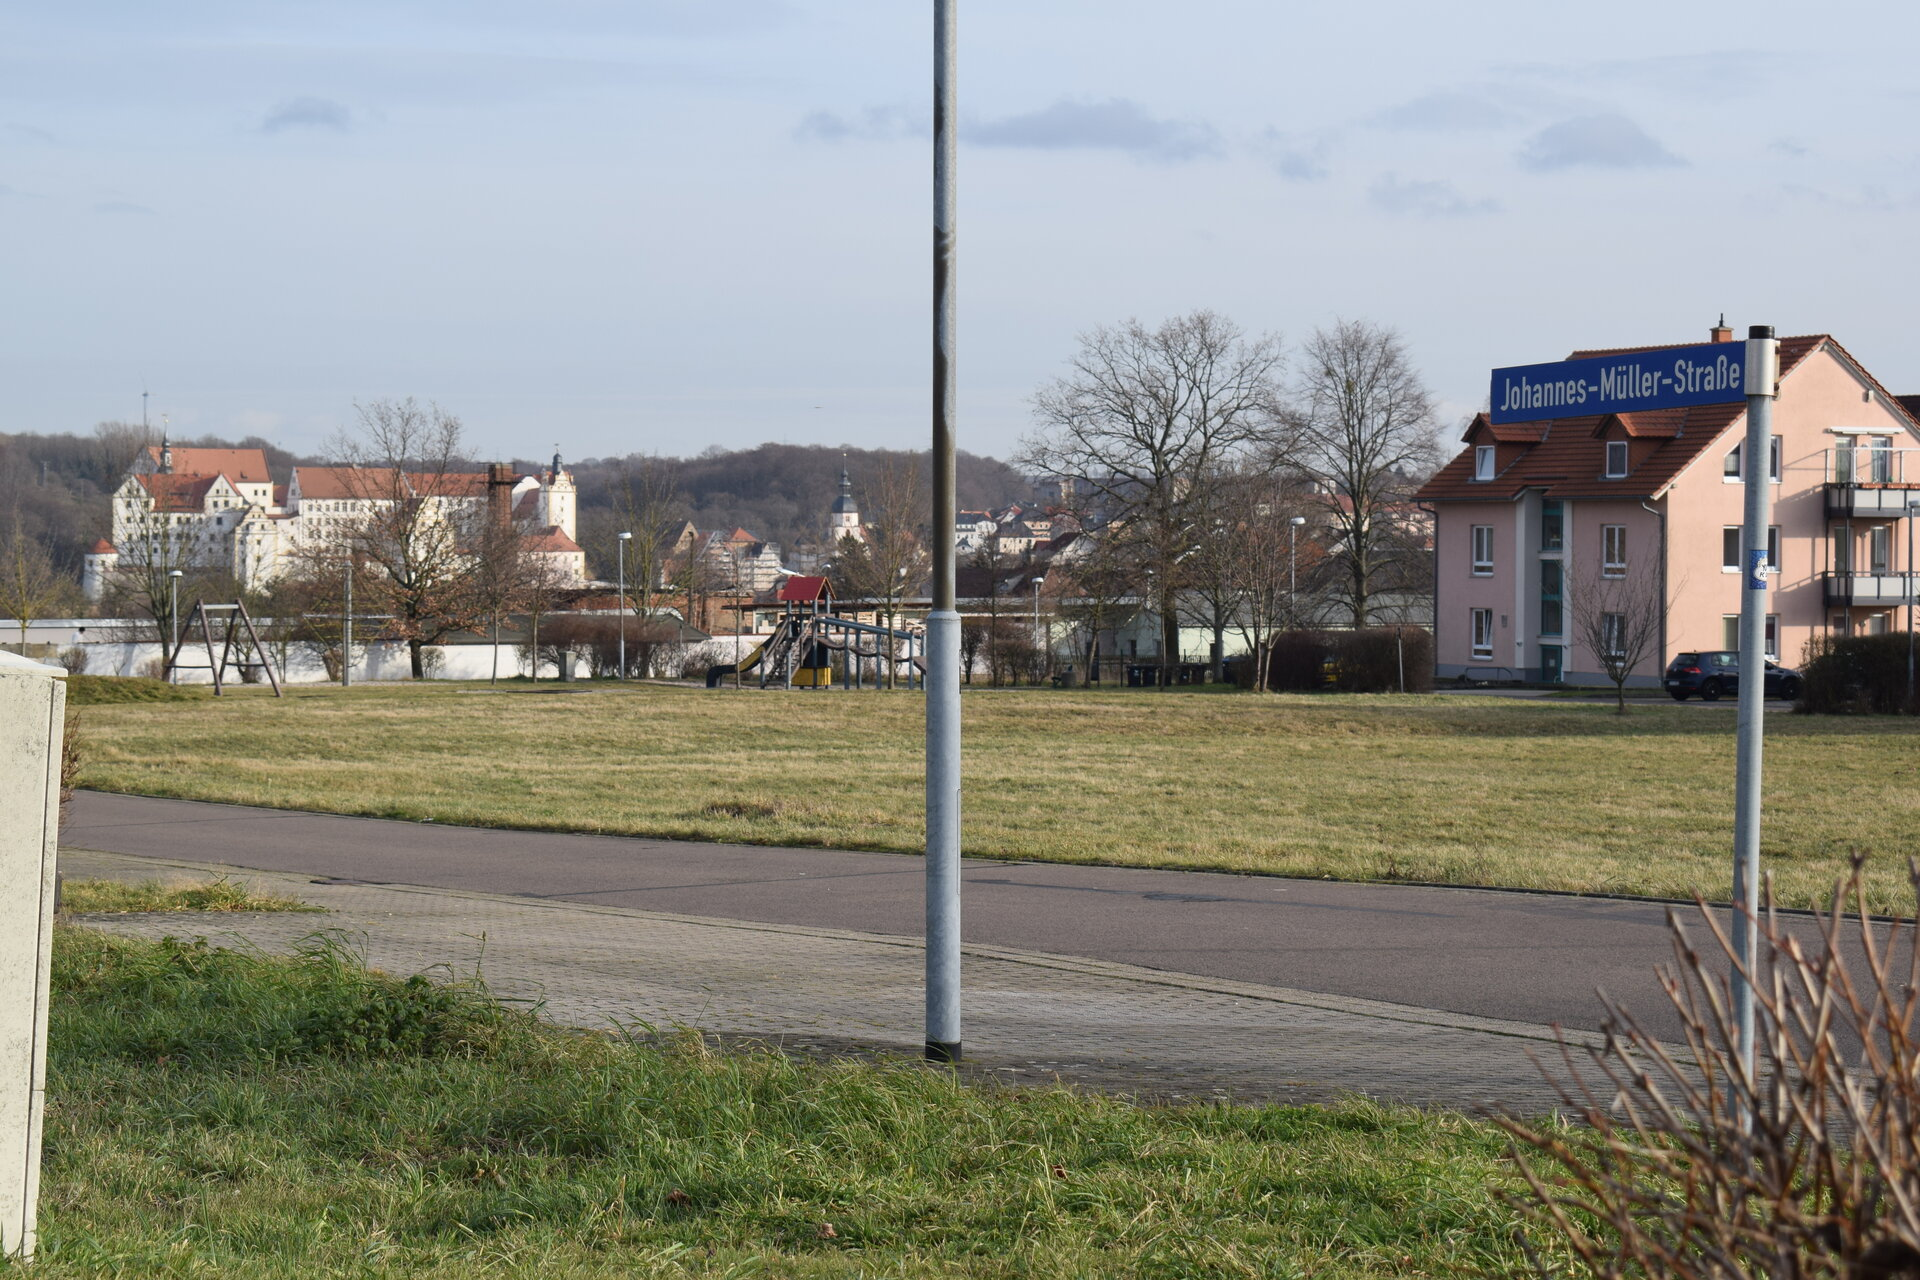 Johann-David-Köhler-Straße in Thumirnicht